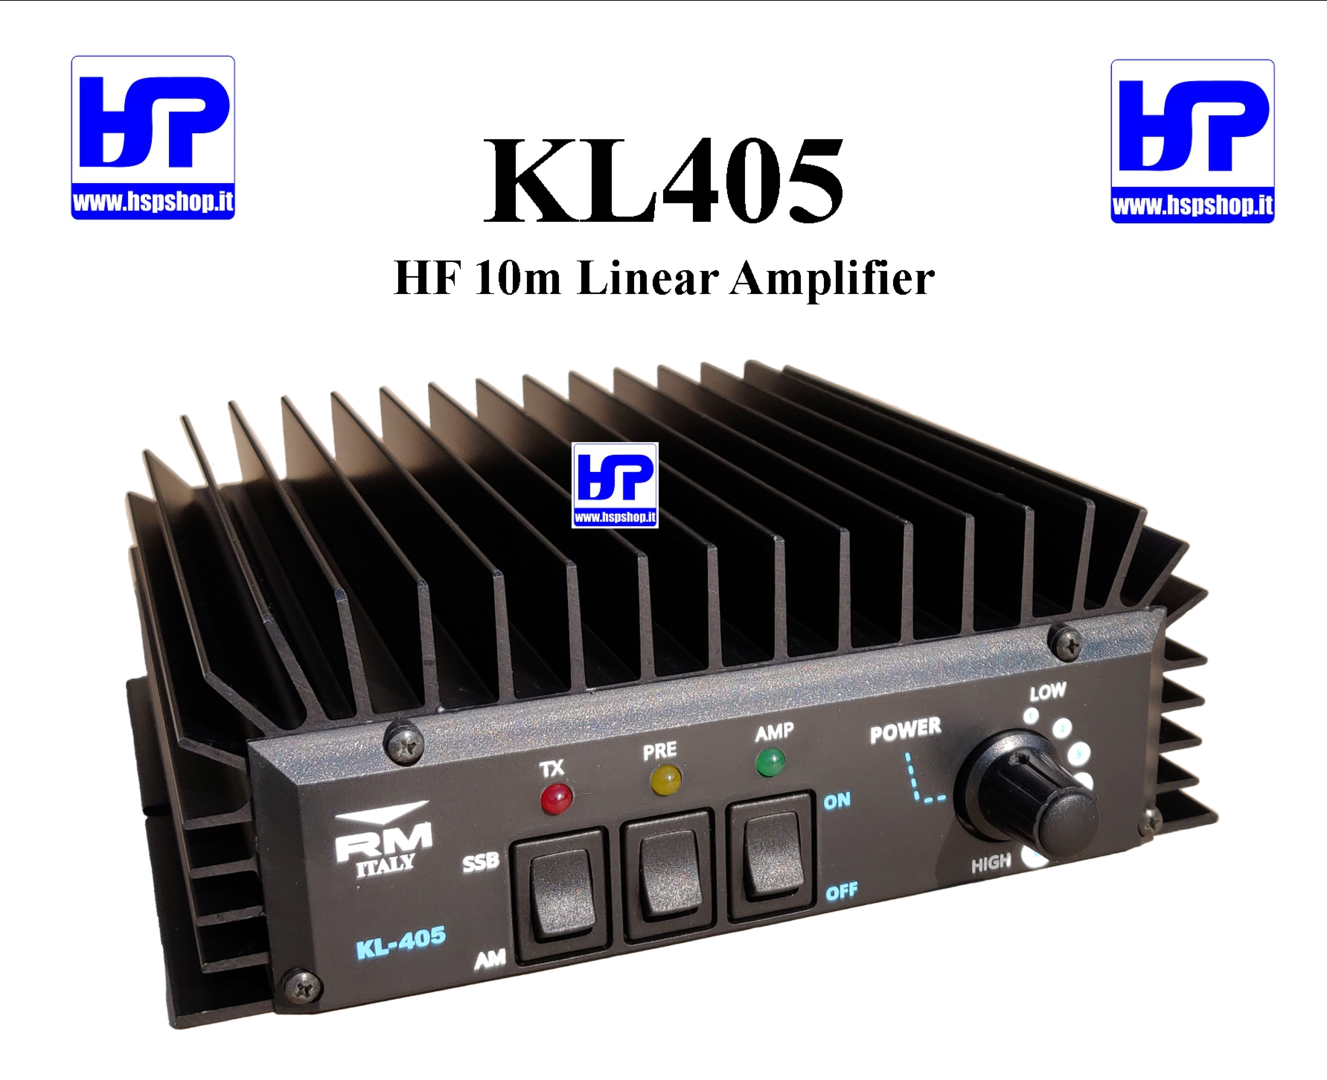 RM ITALY - KL405 - HF WIDE BAND AMPLIFIER